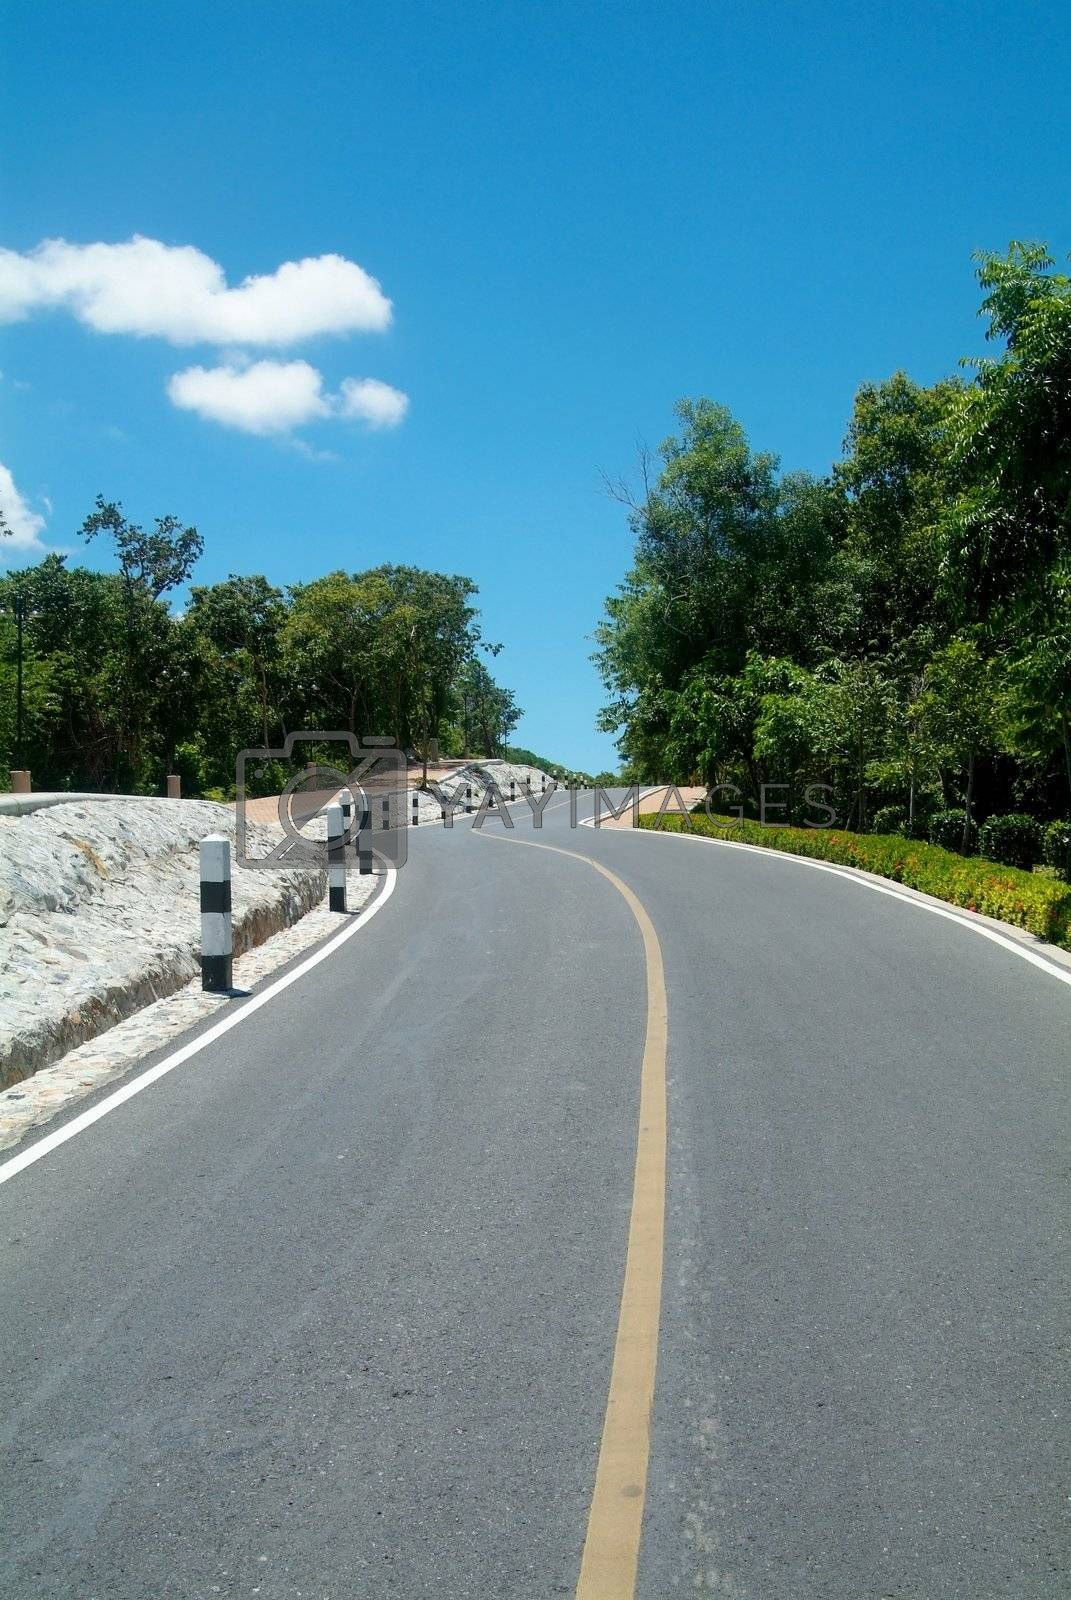 Royalty free image of Winding road over a hill by epixx